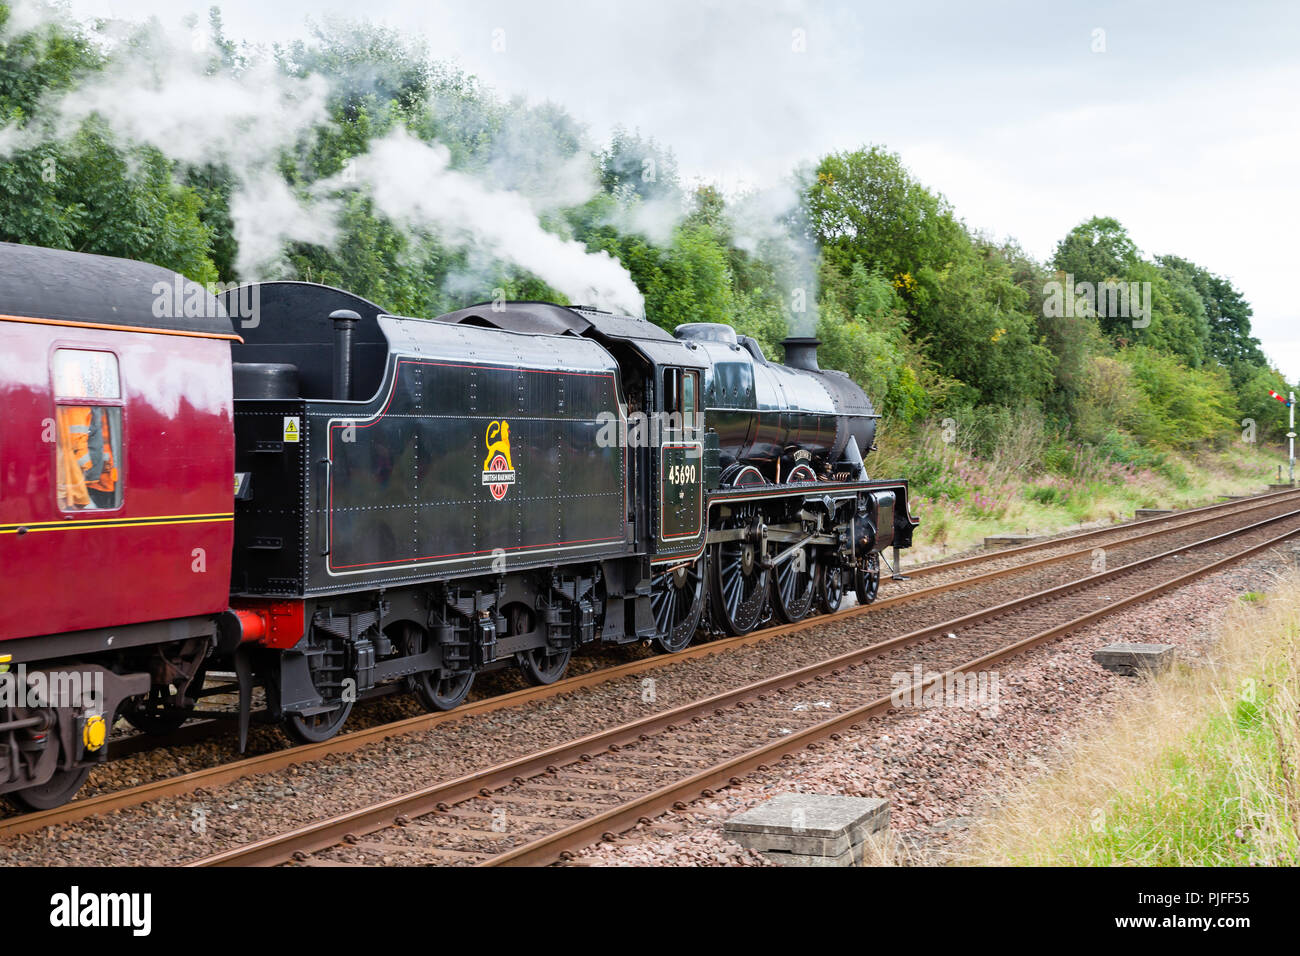 Steam train 45690, Leander departs Appleby in Cumbria, England on the Settle to Carlisle railway. - Stock Image